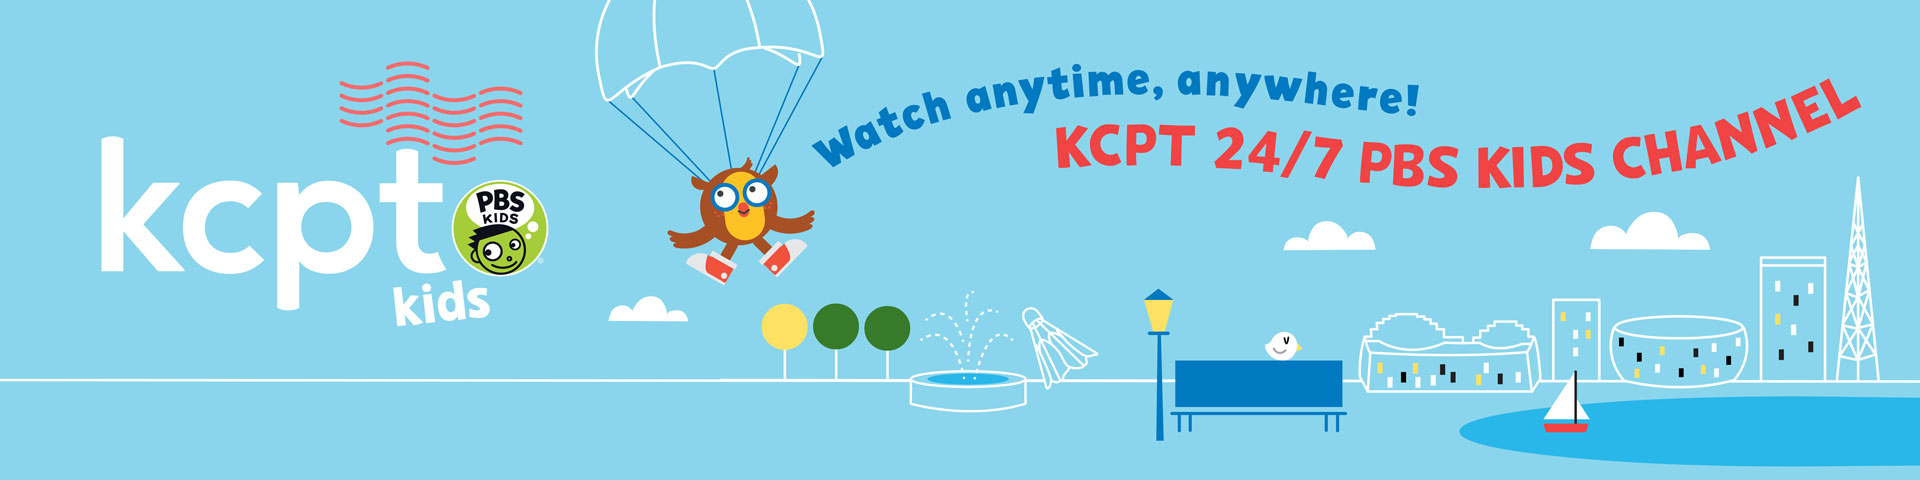 KCPT KIDS Watch anytime, anywhere! KCPT 247 PBS KIDS Channel